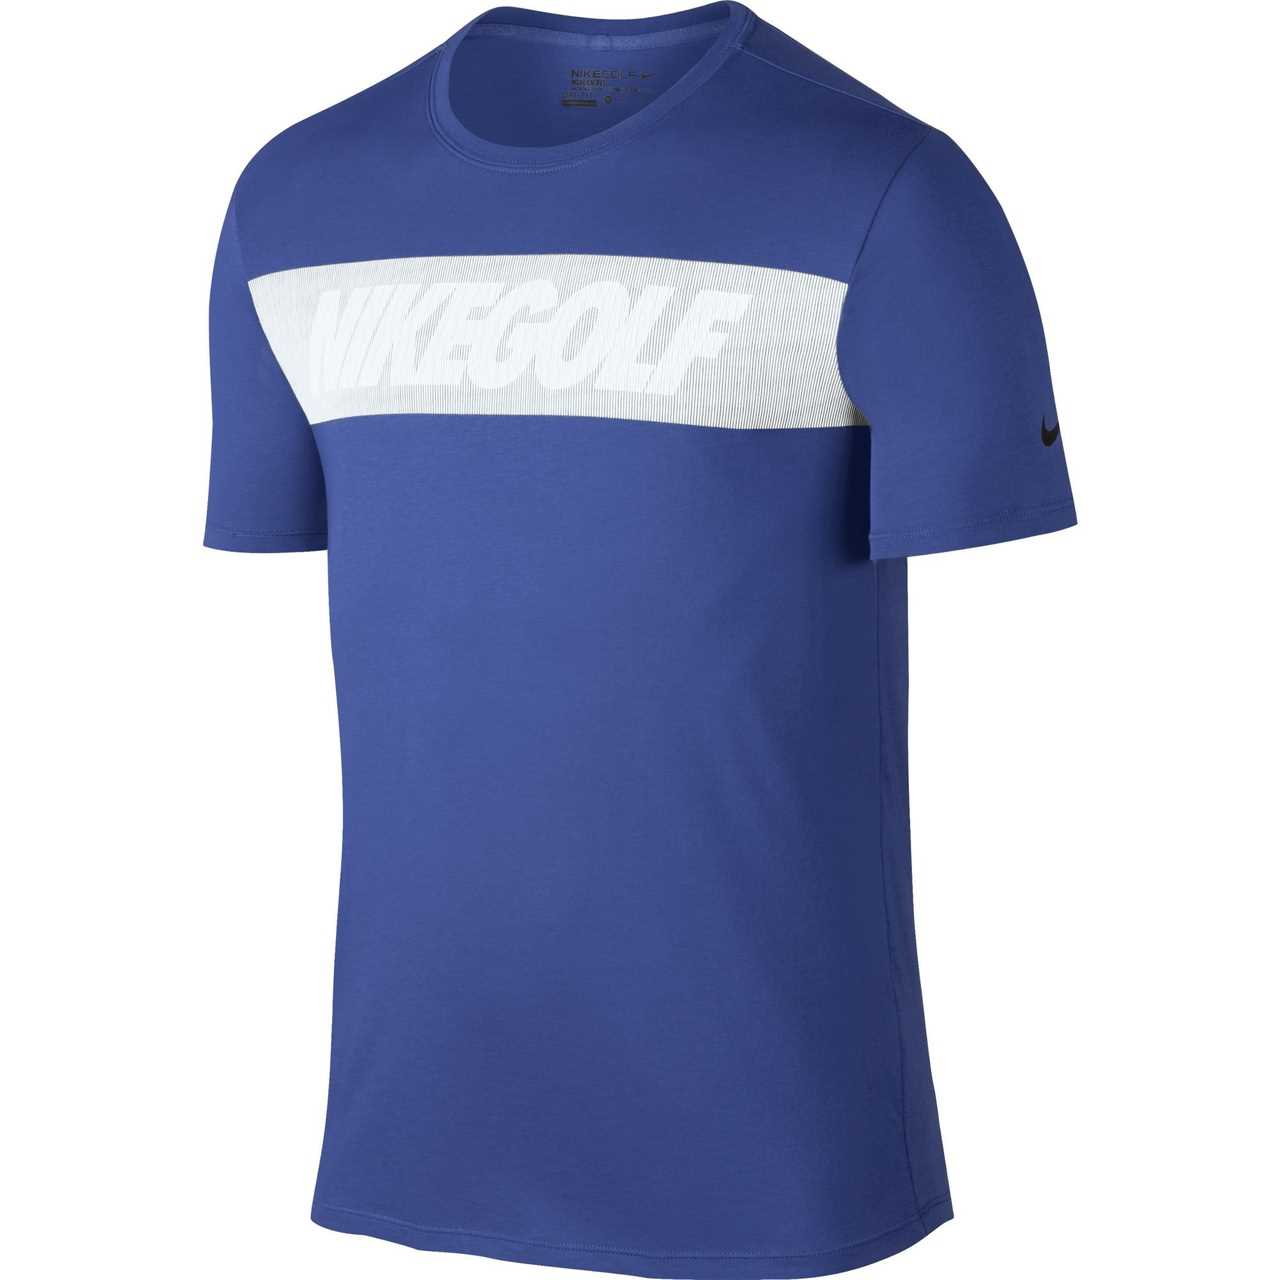 da625ed46 Nike Men's Graphic Golf T-Shirt - Game Royal - Golfland Warehouse